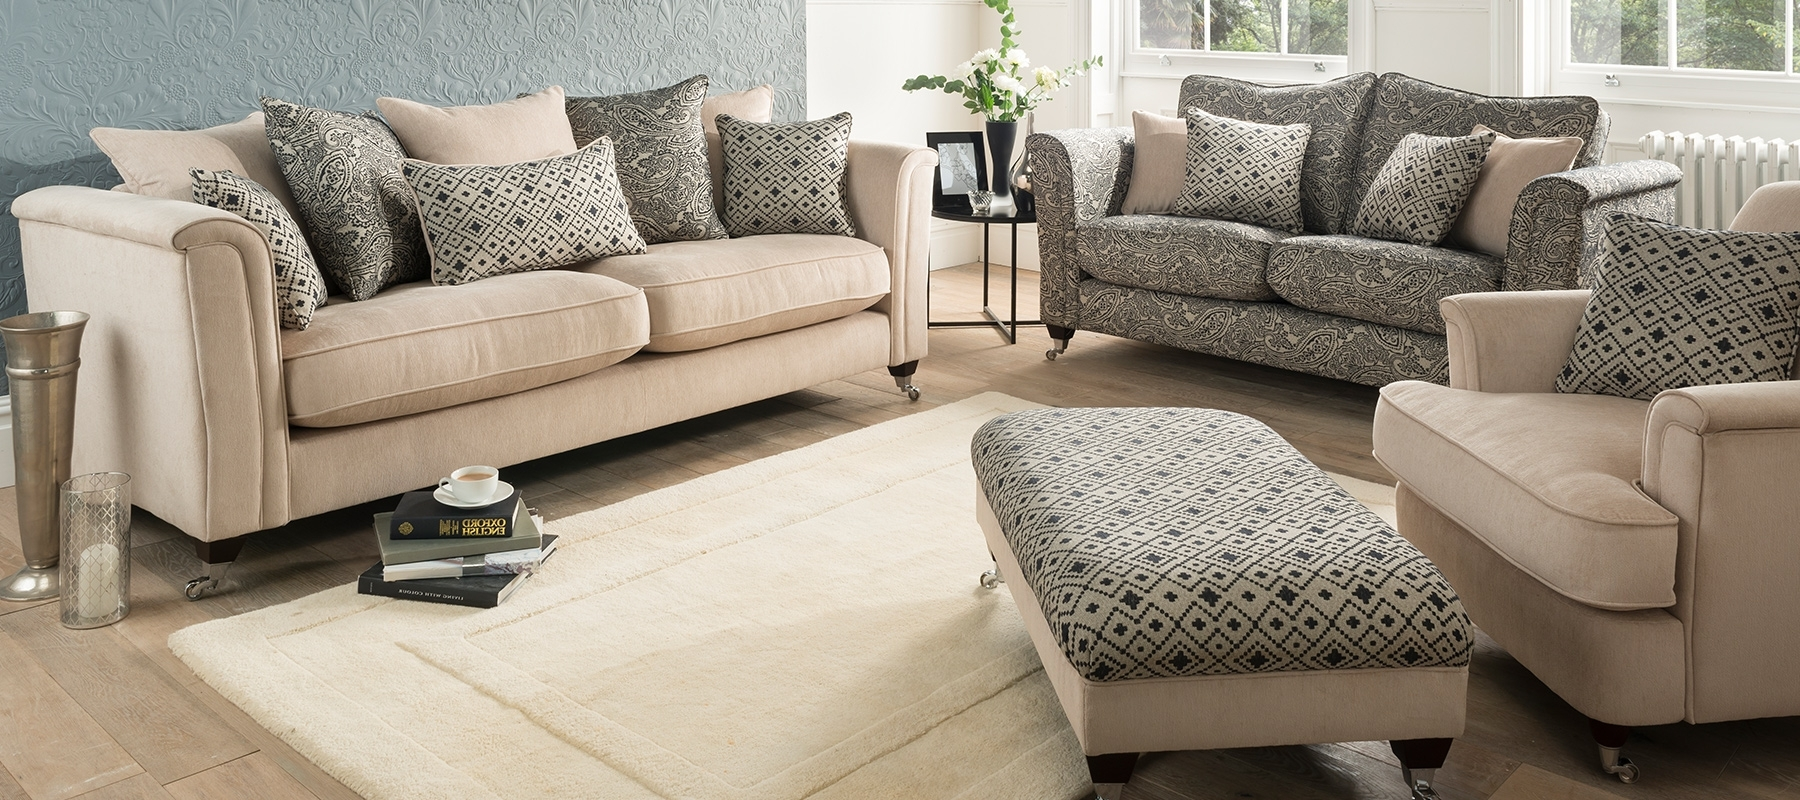 Sofas And Chairs Regarding Current Sofas & Chairs – Cosy Carpets (View 13 of 15)